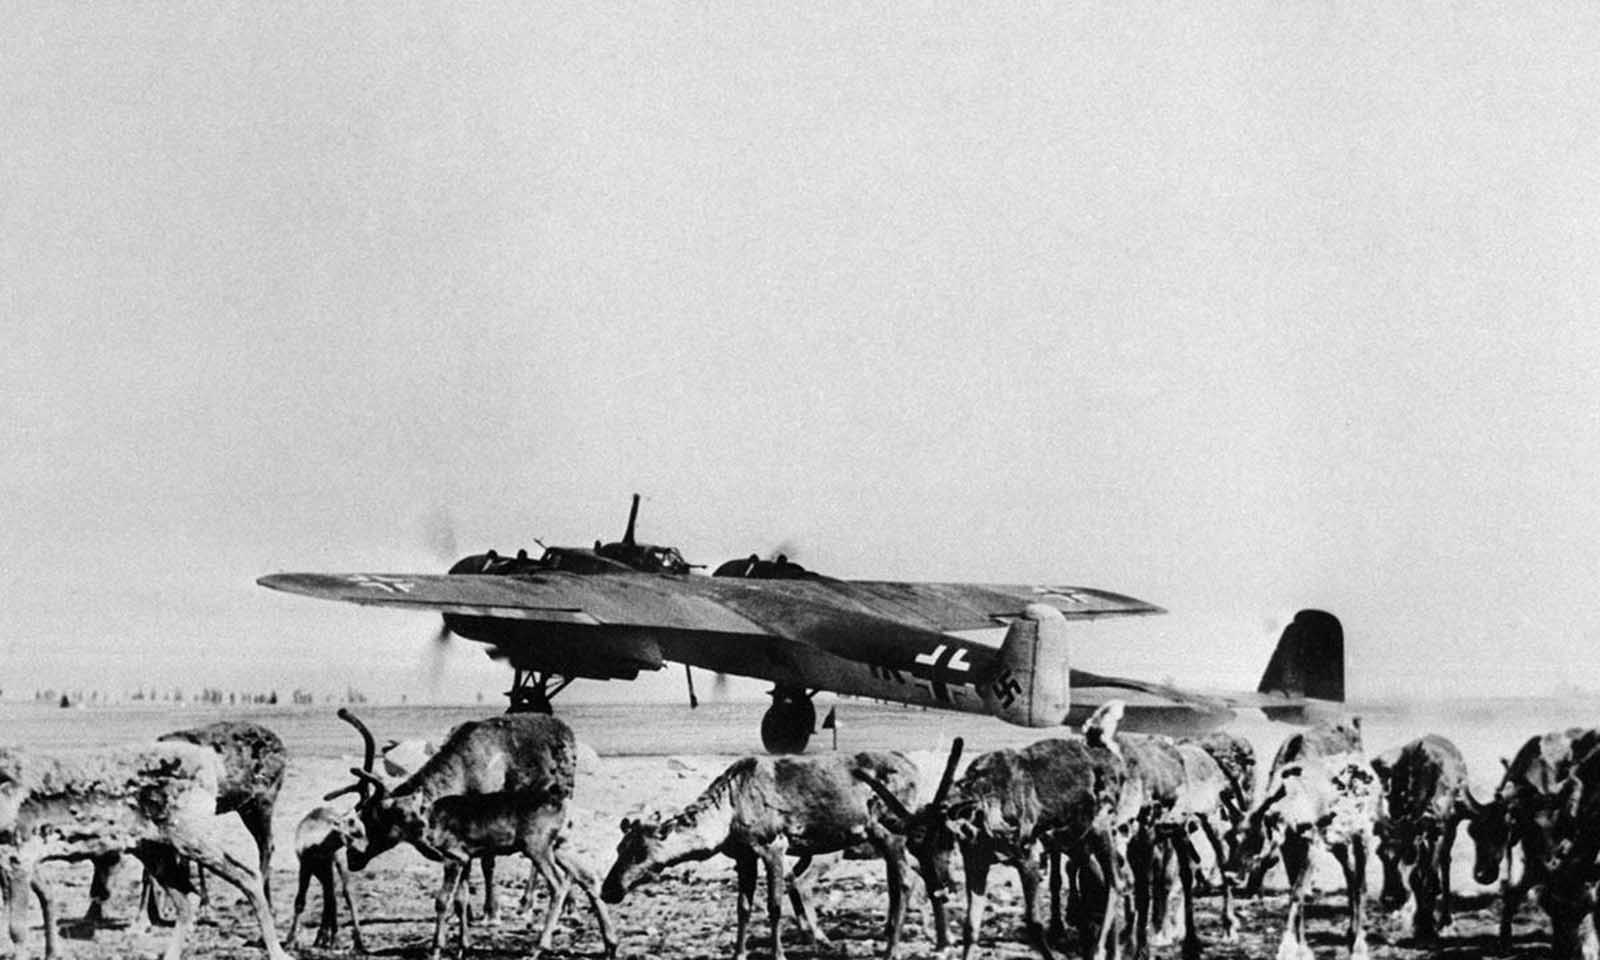 Reindeer graze on an airfield in Finland on July 26, 1941. In the background a German war plane takes off.